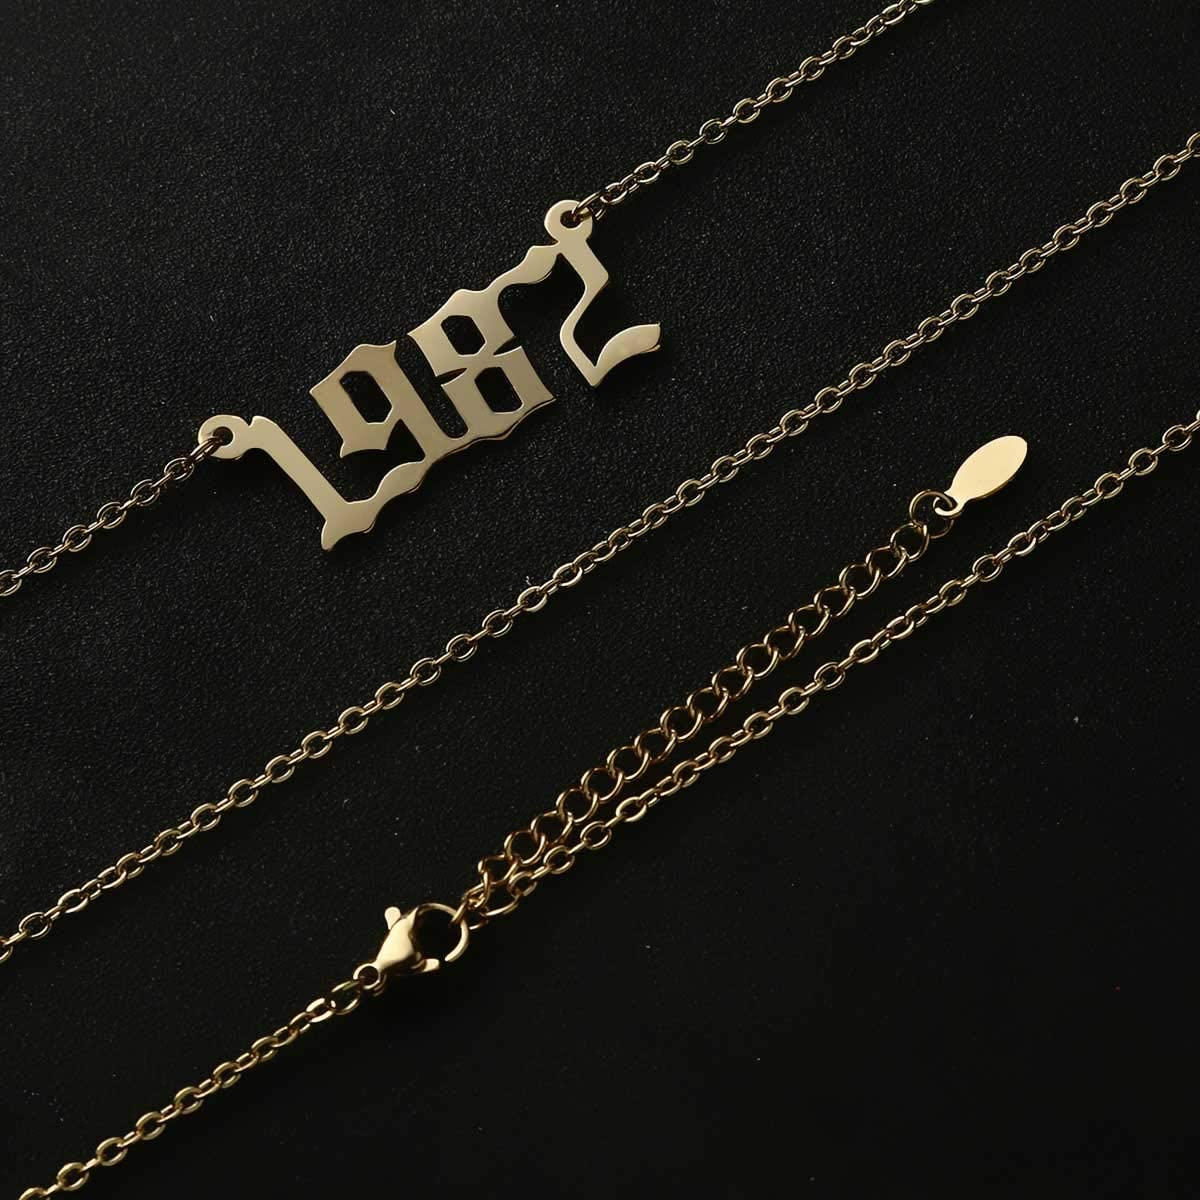 18K Gold Plated Custom Old English Year Pendant Necklace Birth Year Number Necklace Birthday Gifts for Women Girls Gold Chain 18 Inch M MOOHAM Birth Year Necklace Personalized